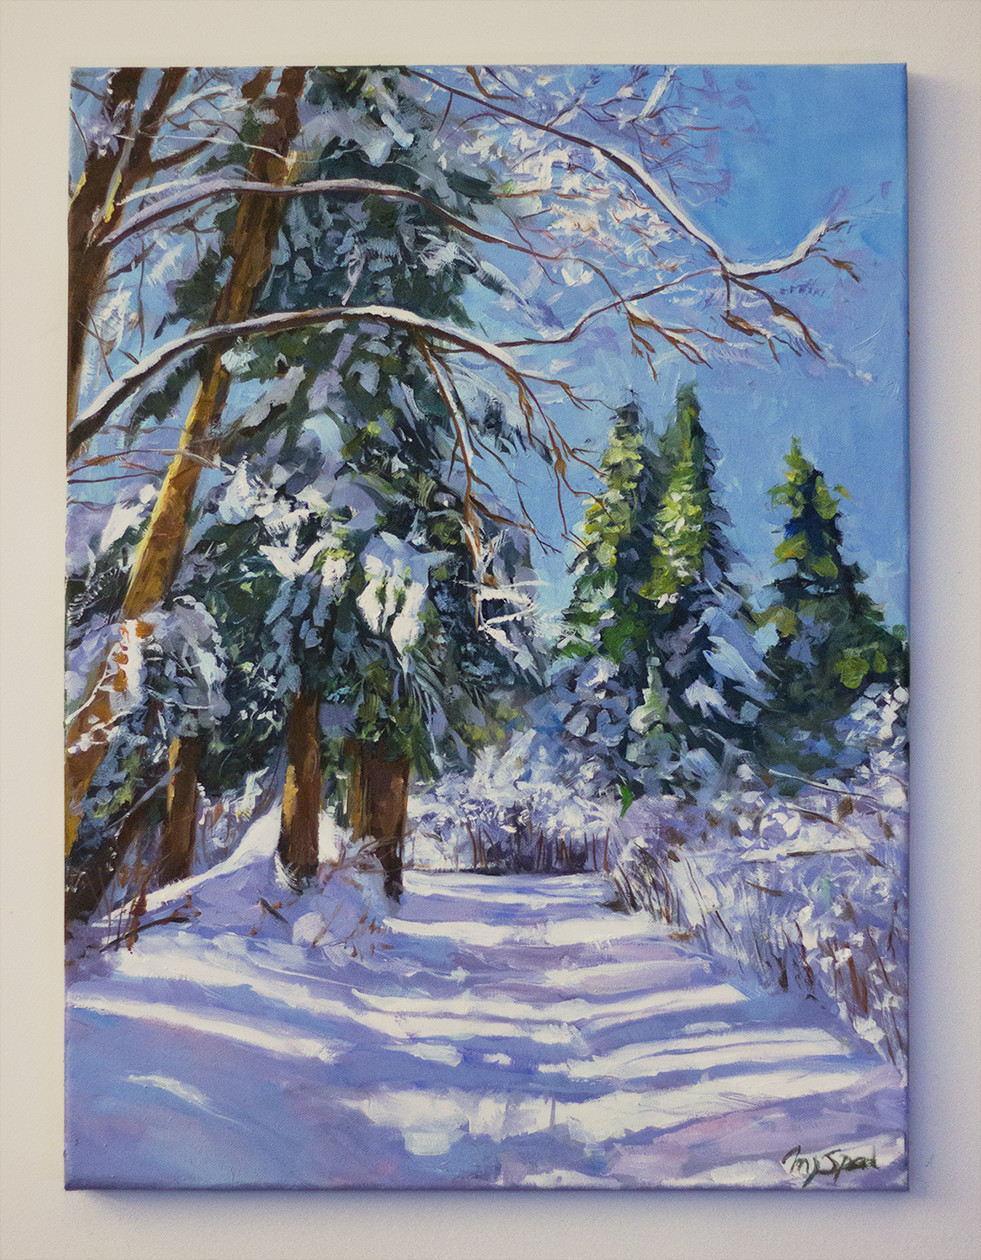 Mj venegas spadafora wide winterpainting 3 low